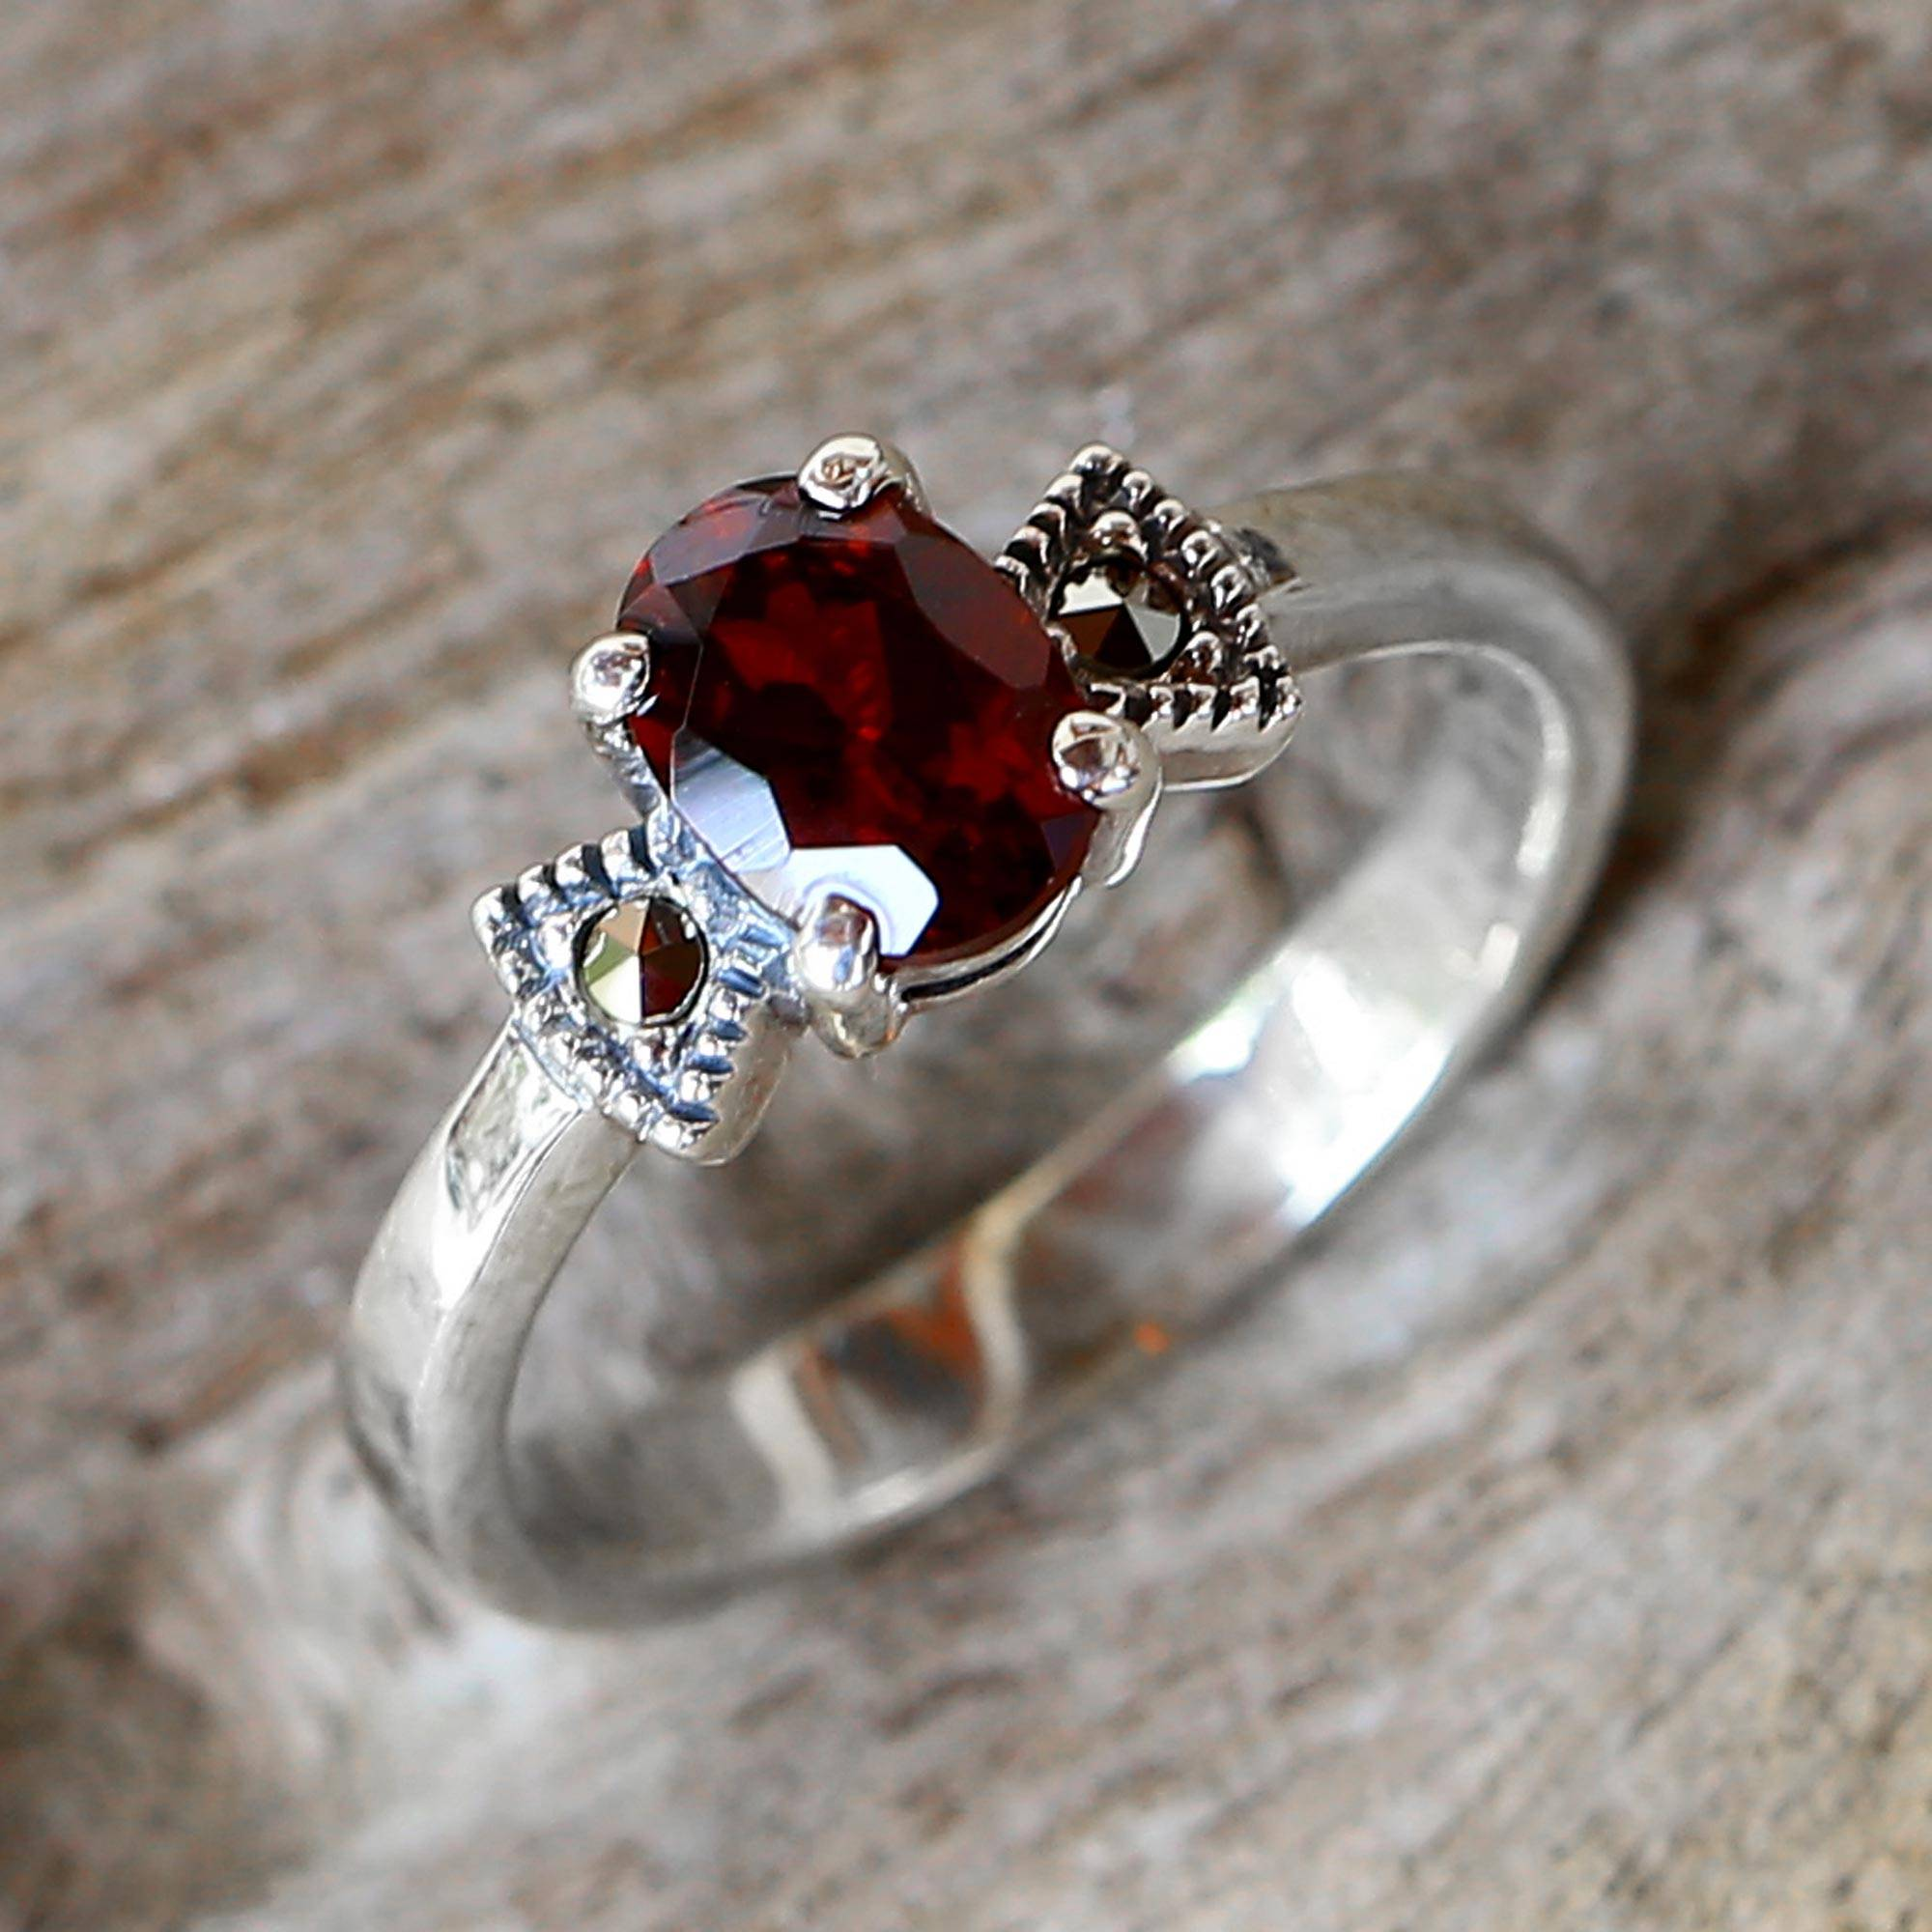 and silver statement gemstone ring rings with art deco carnelian vintage flower red leaf accents p jngk sterling cocktail il size marcasite fullxfull